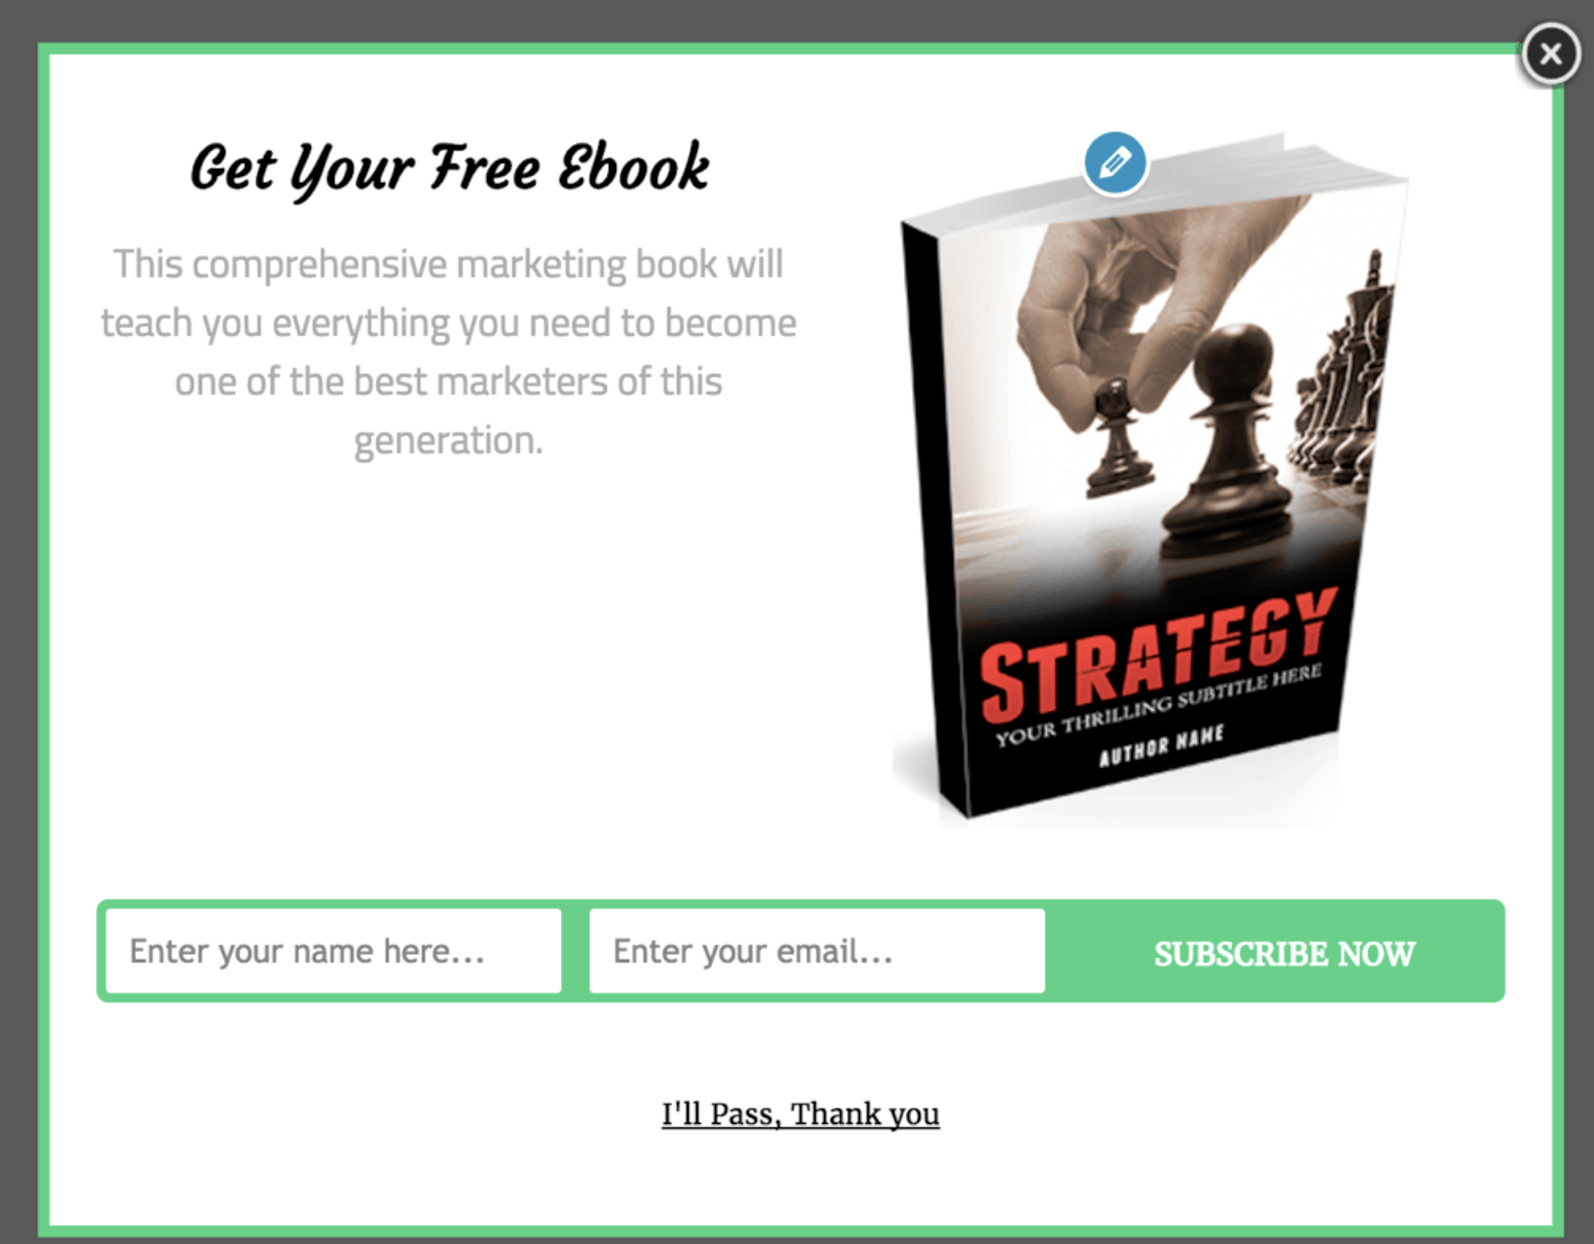 example of free gift in opt in email form